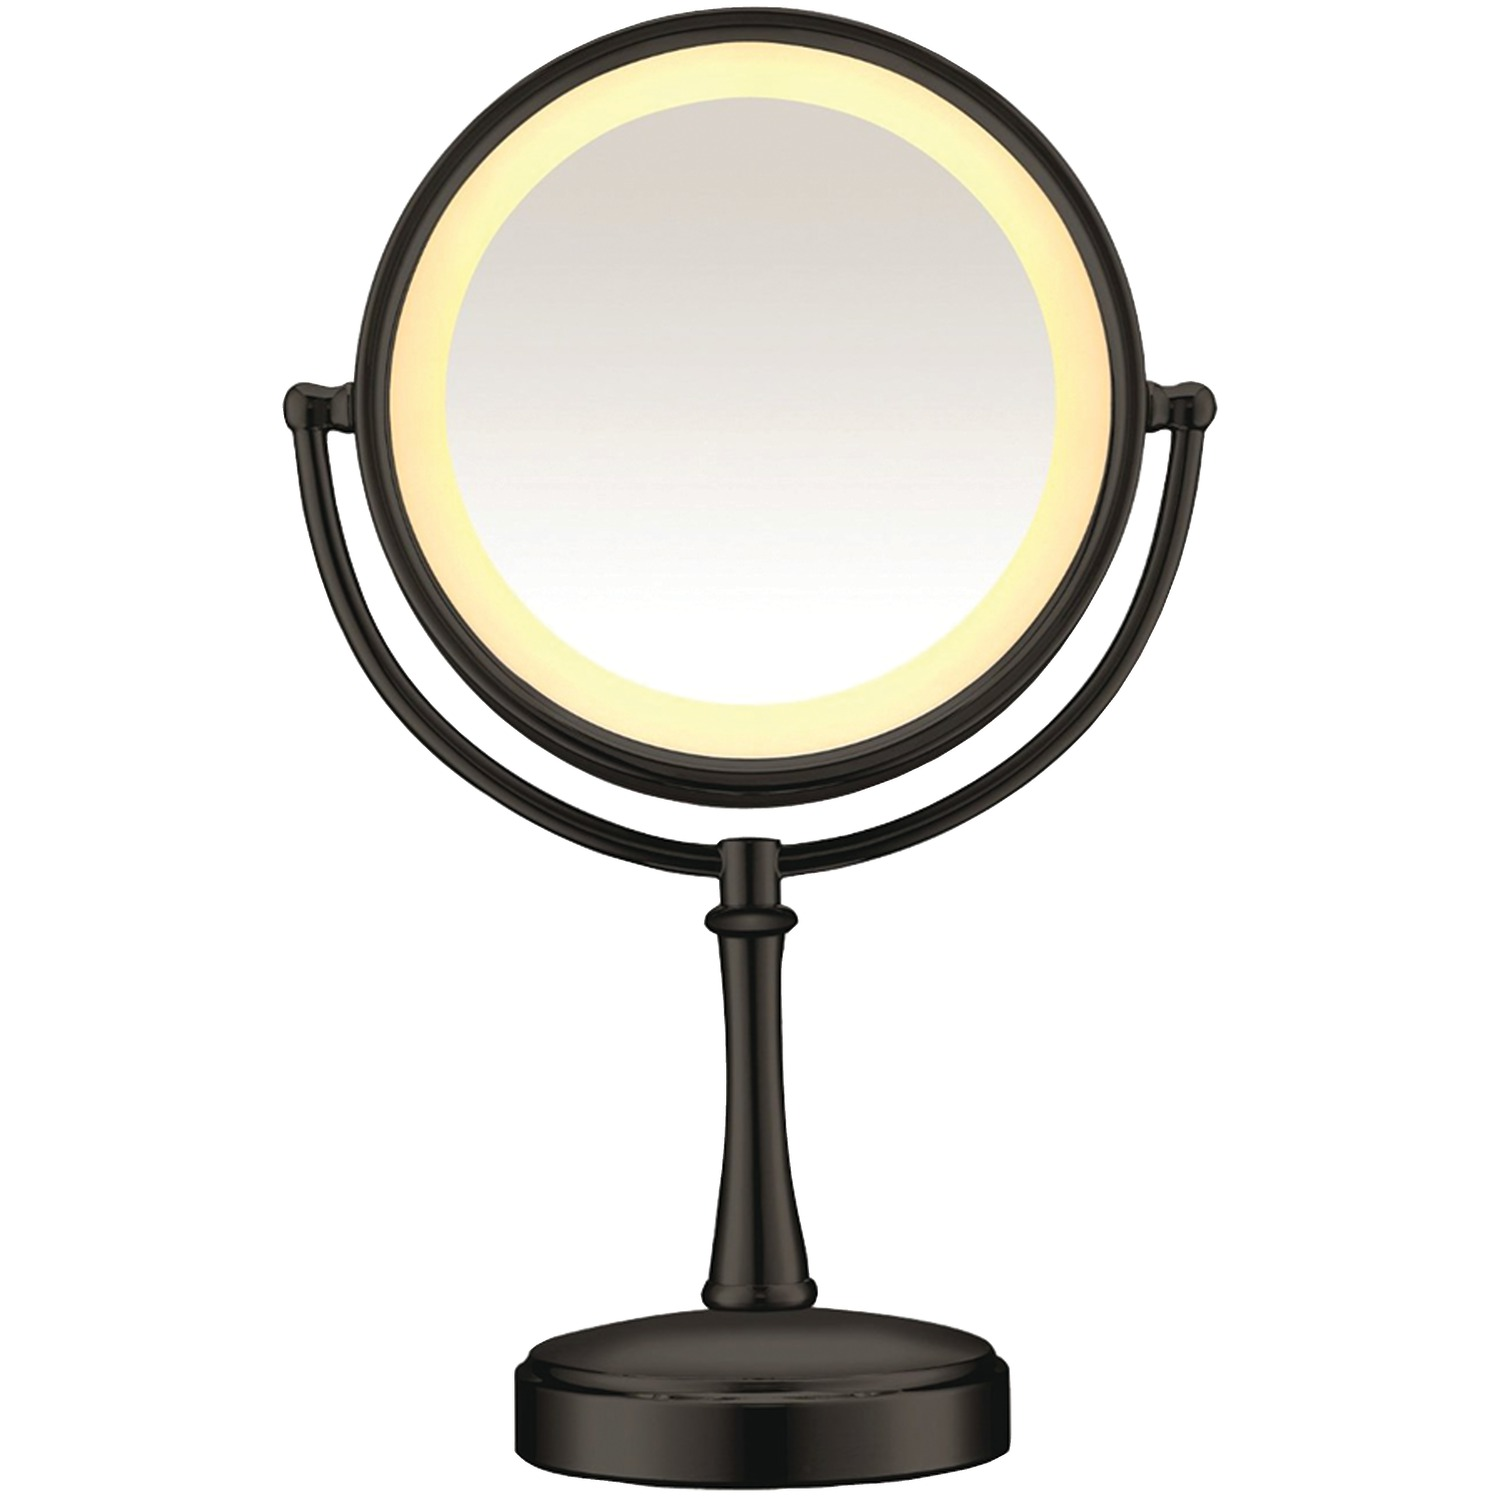 3-Way Touch Control Lighted Mirror